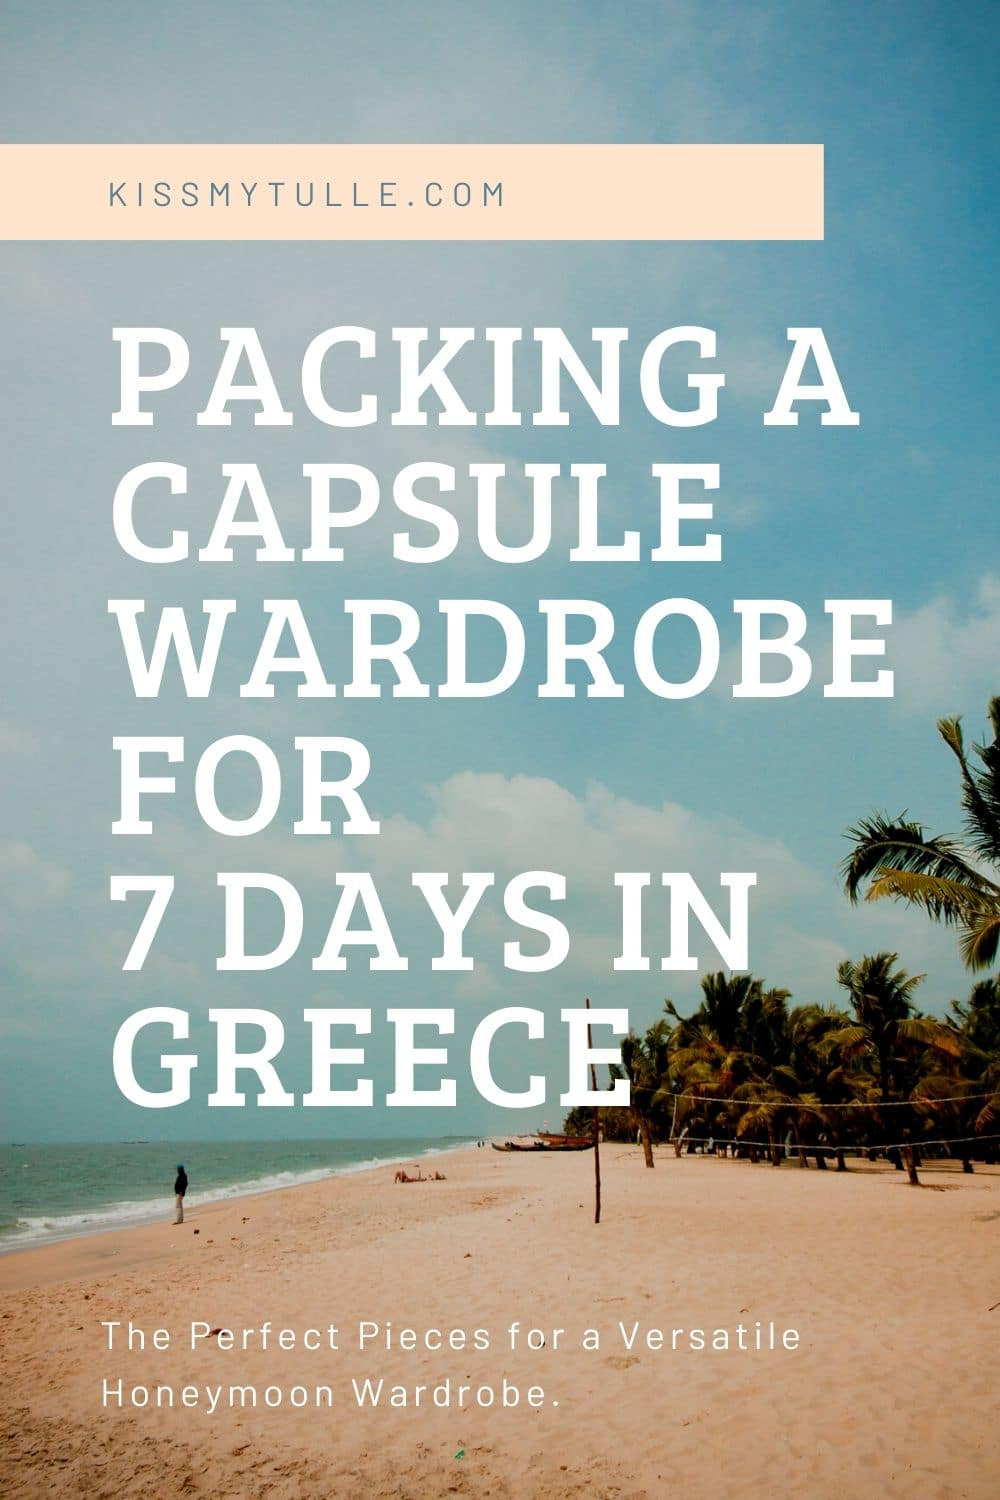 Alaskan lifestyle blogger, Cris Stone, shares her tips and suggestions on packing for 7 days in Greece. Find out more!